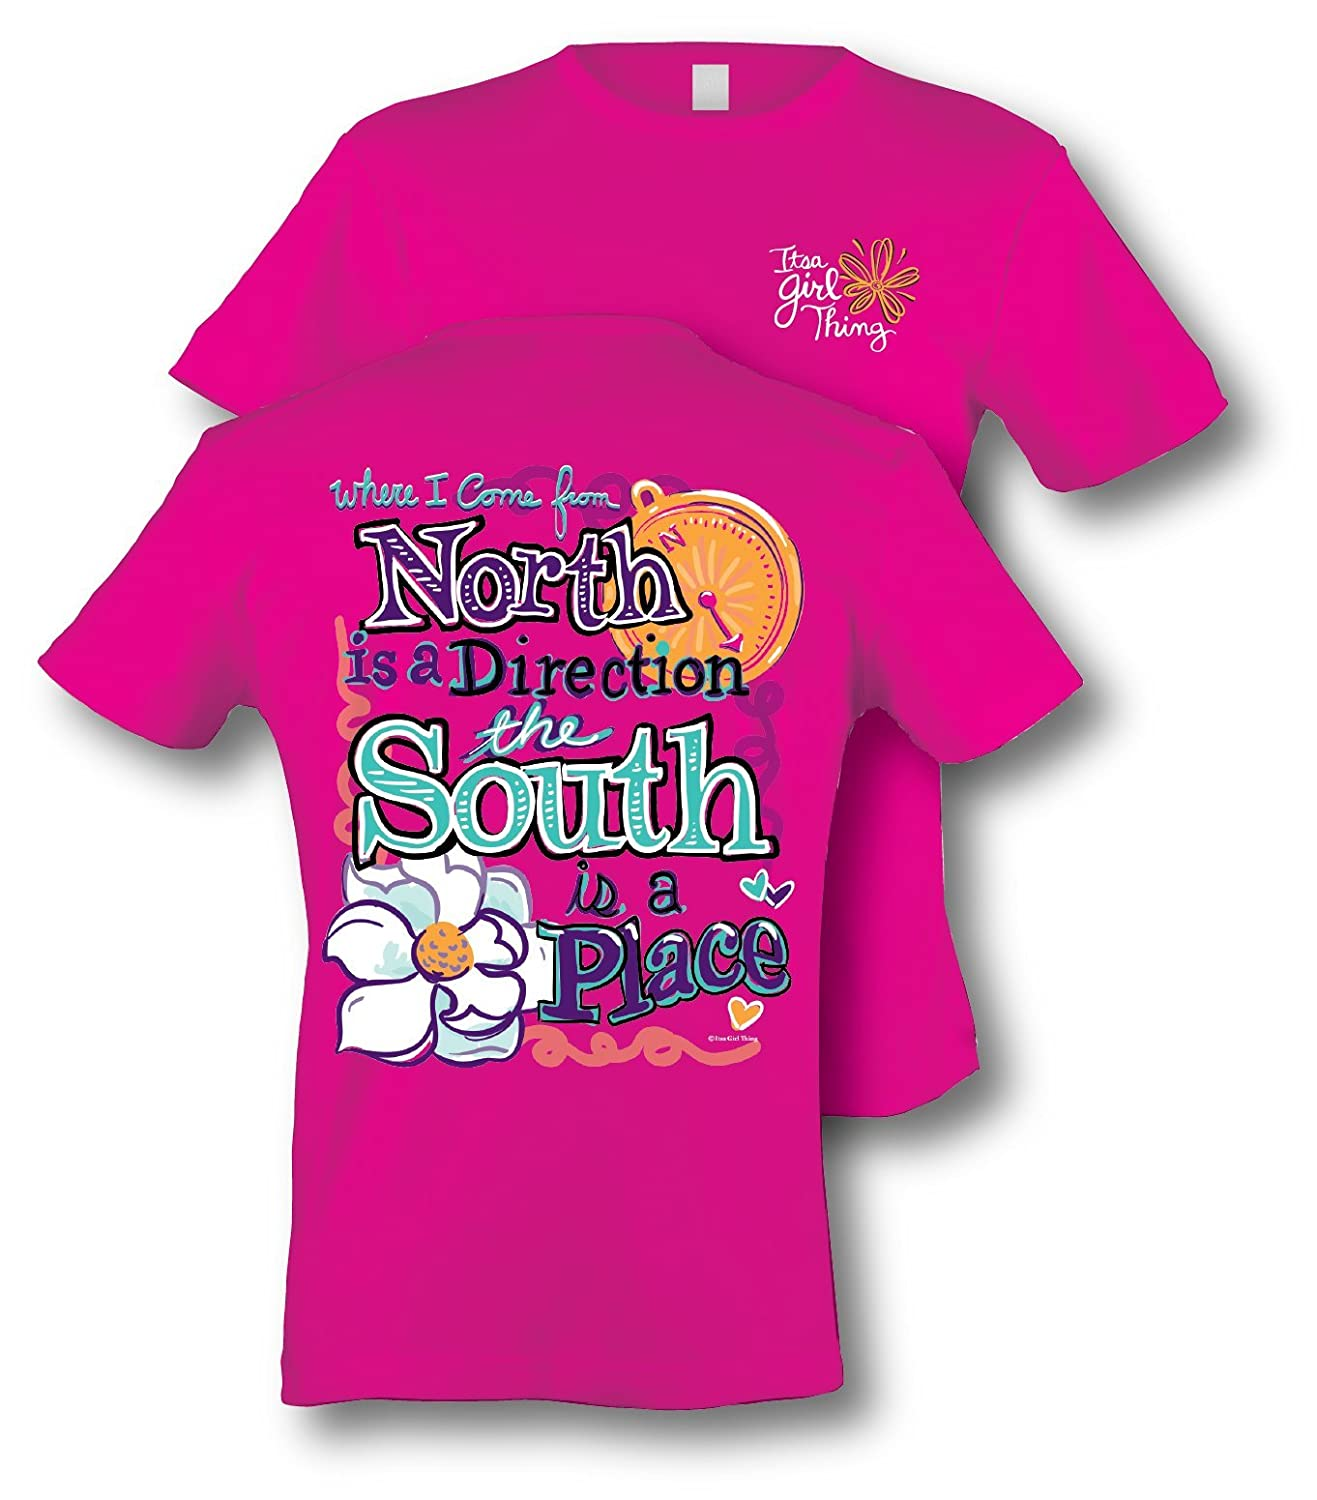 Itsa South is a Place - Ladies Tee